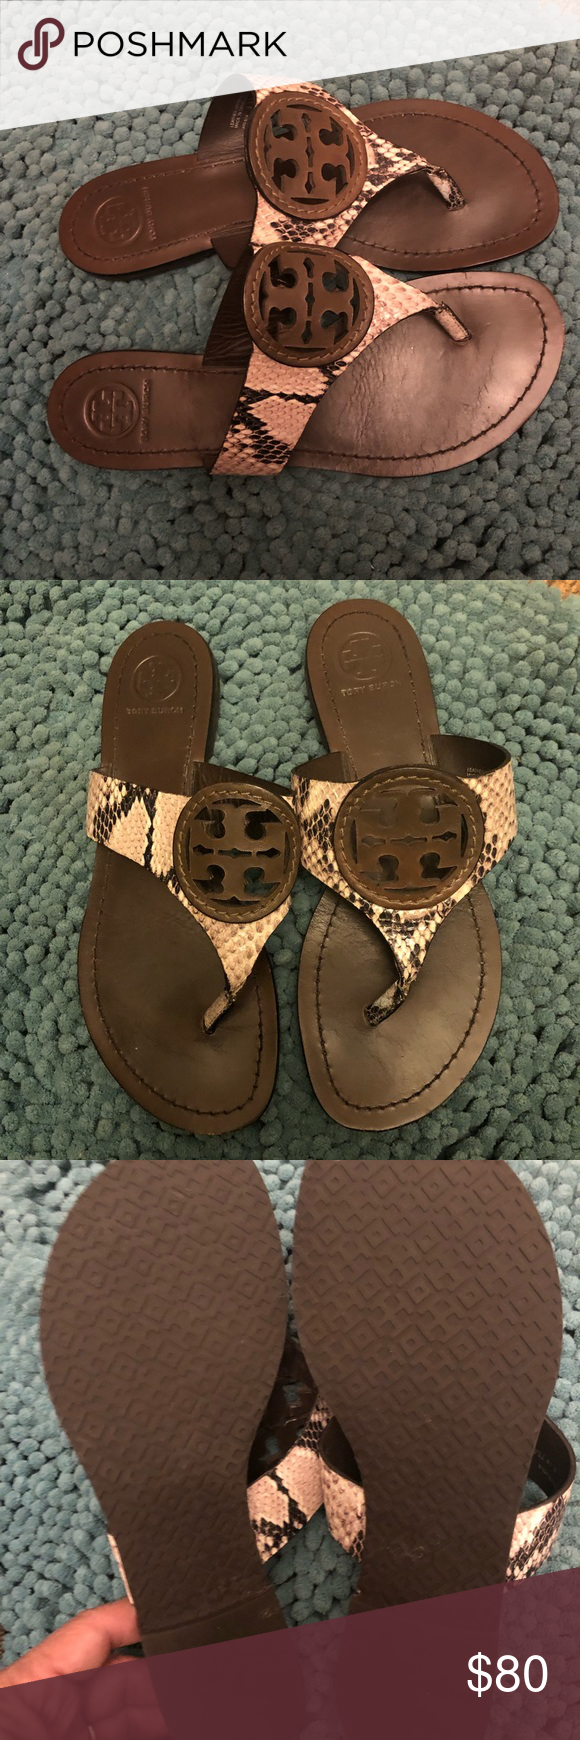 2078d7f56 Tory Burch Faux Snake Skin Miller Sandals Size 7️⃣ Almost New only worn  once they are to small for me Tory Burch Shoes Sandals